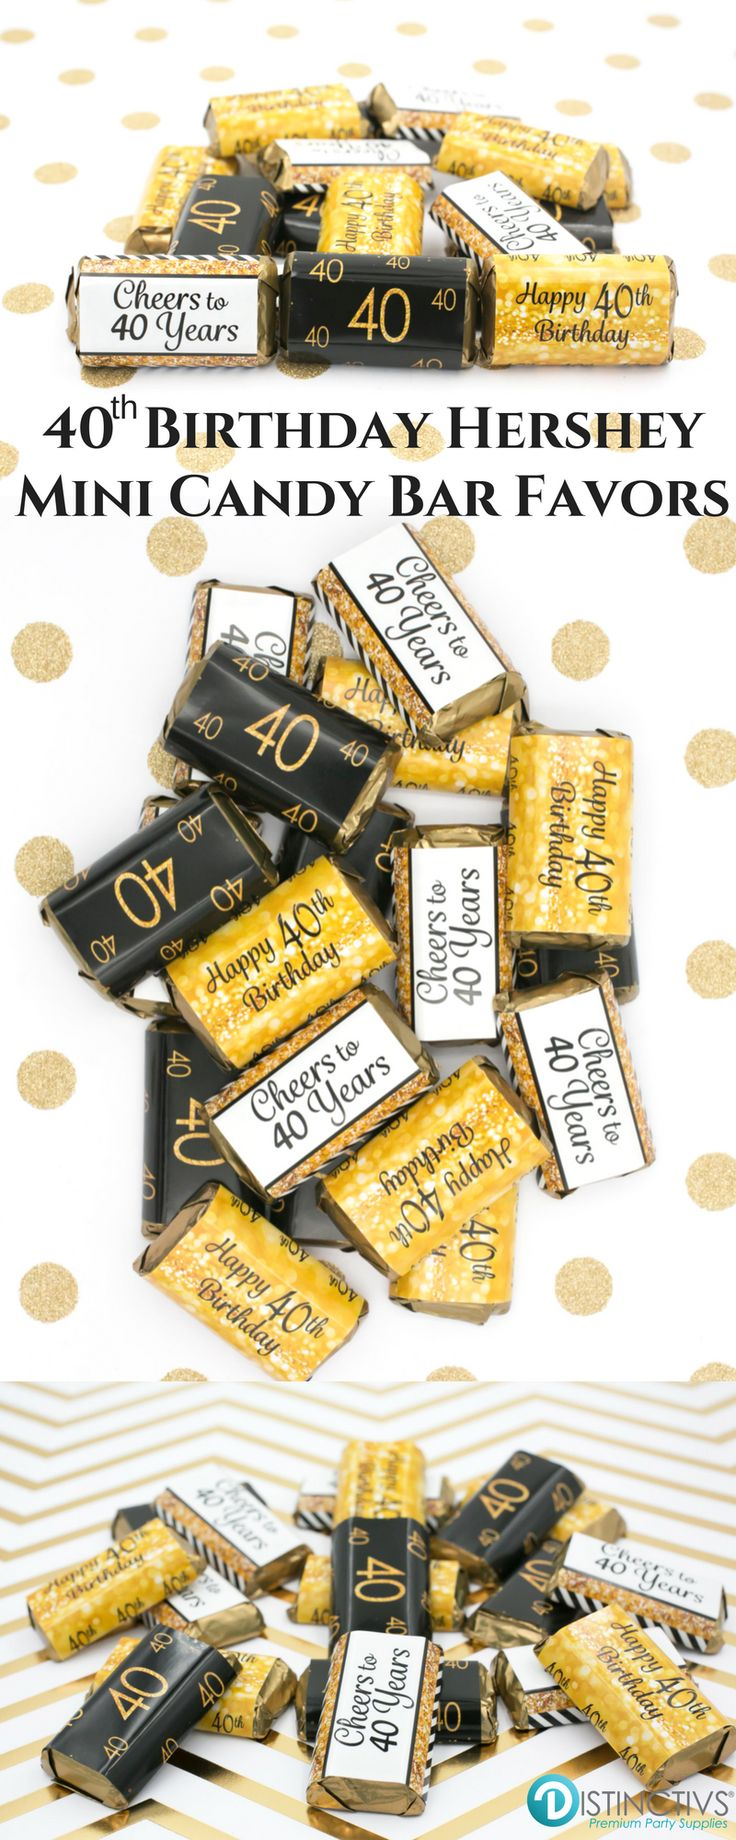 Designed to wrap perfectly around Hershey's® Miniature Bars for a simple and easy 40th birthday party favor or table decoration!